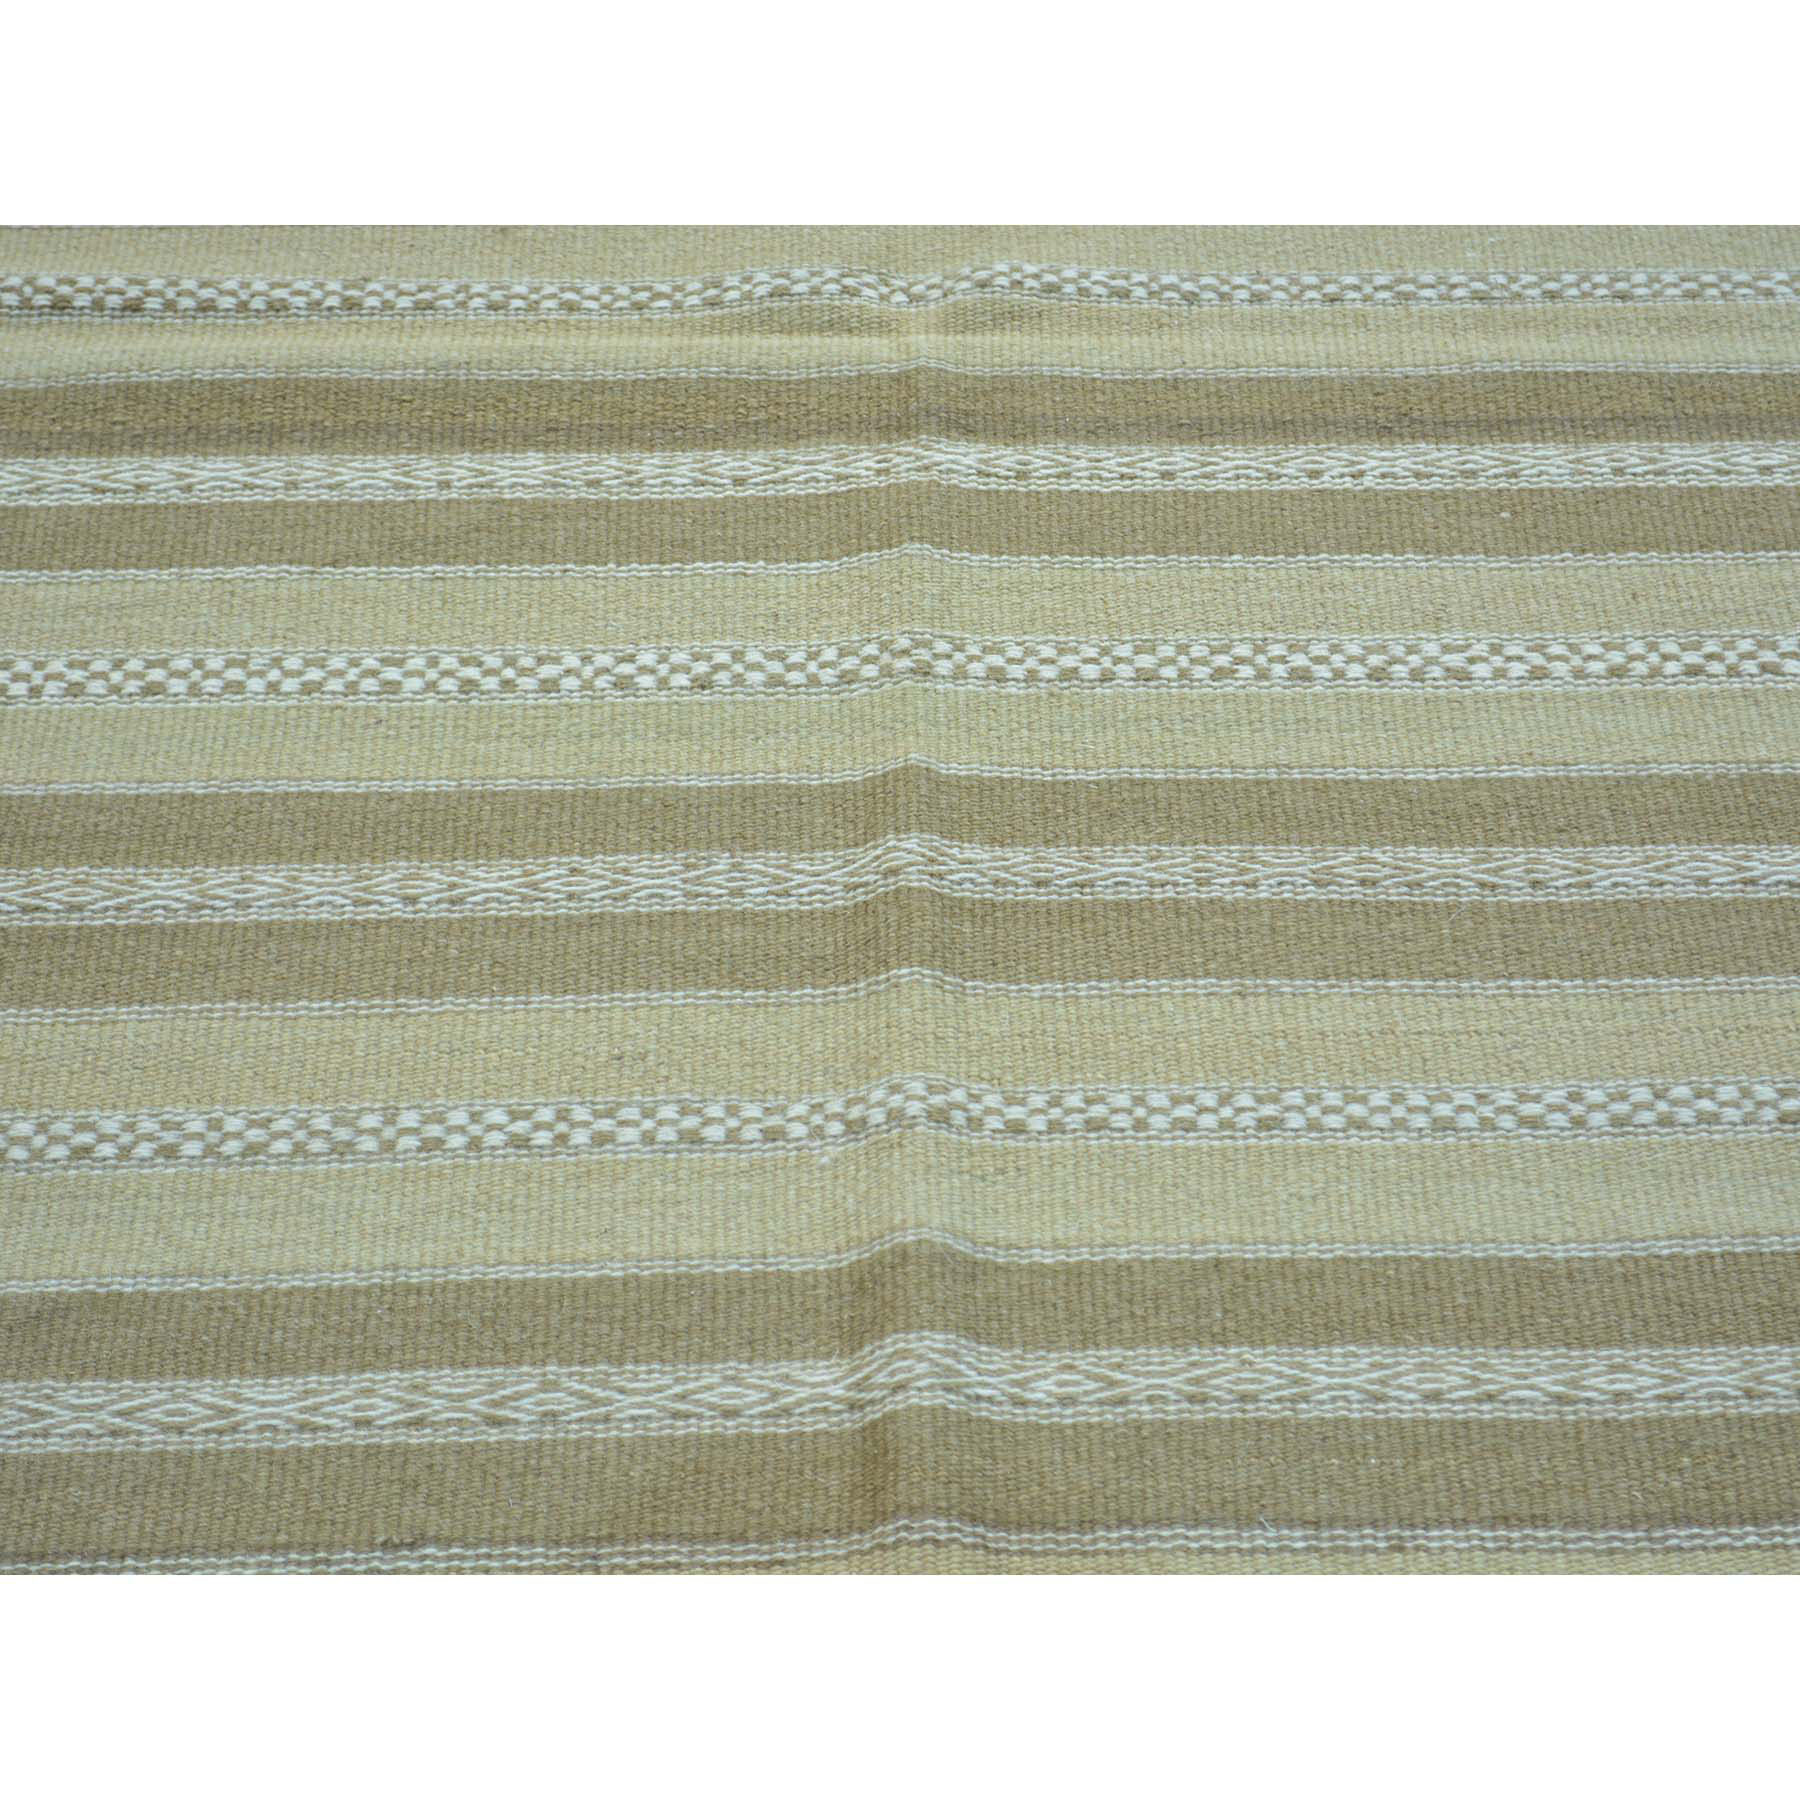 3-10 x6- Pure Wool Reversible Flat Weave Striped Durie Kilim Rug